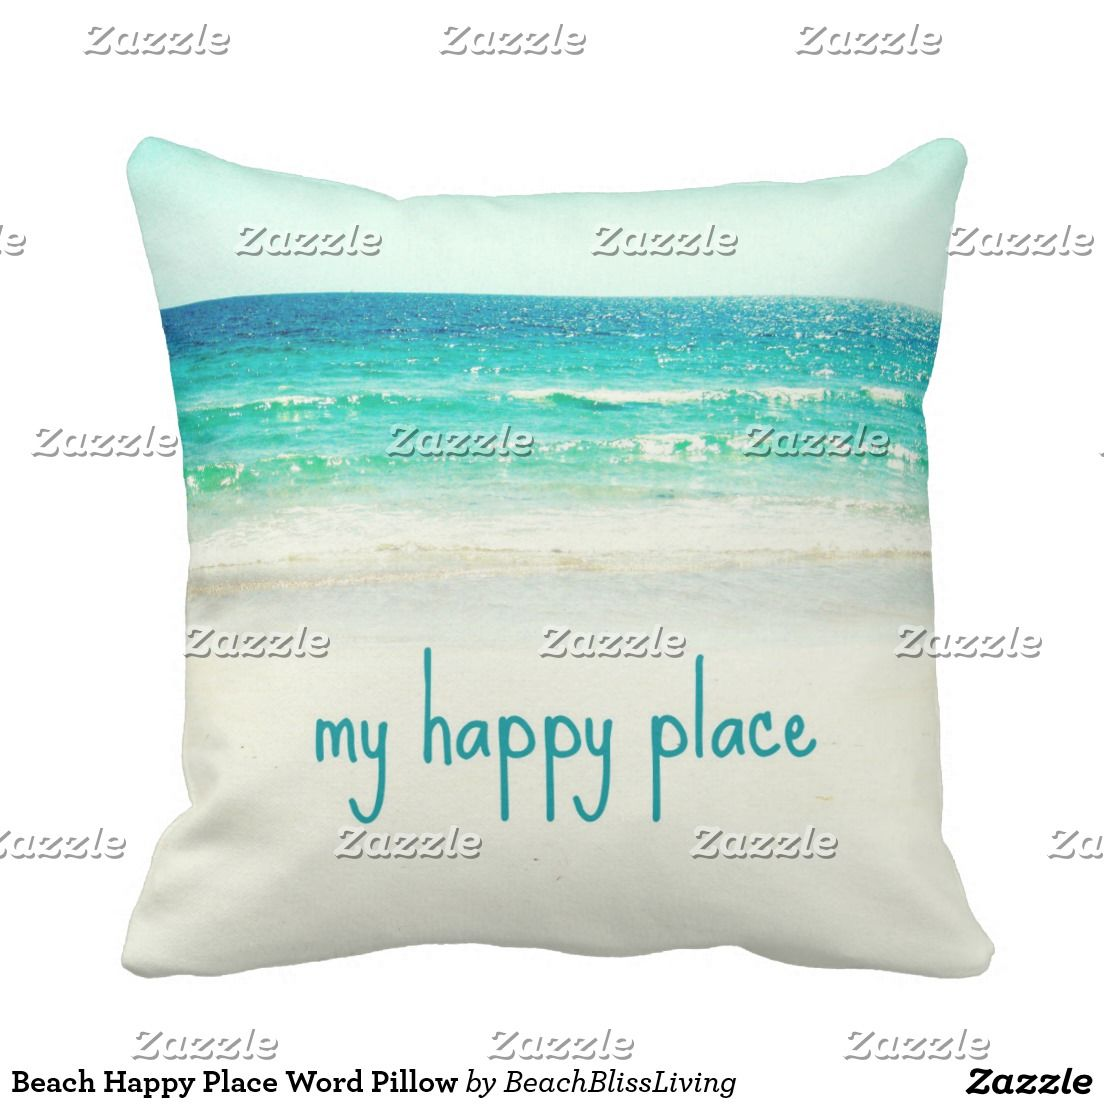 Beach happy place word pillow pillows beach and interiors